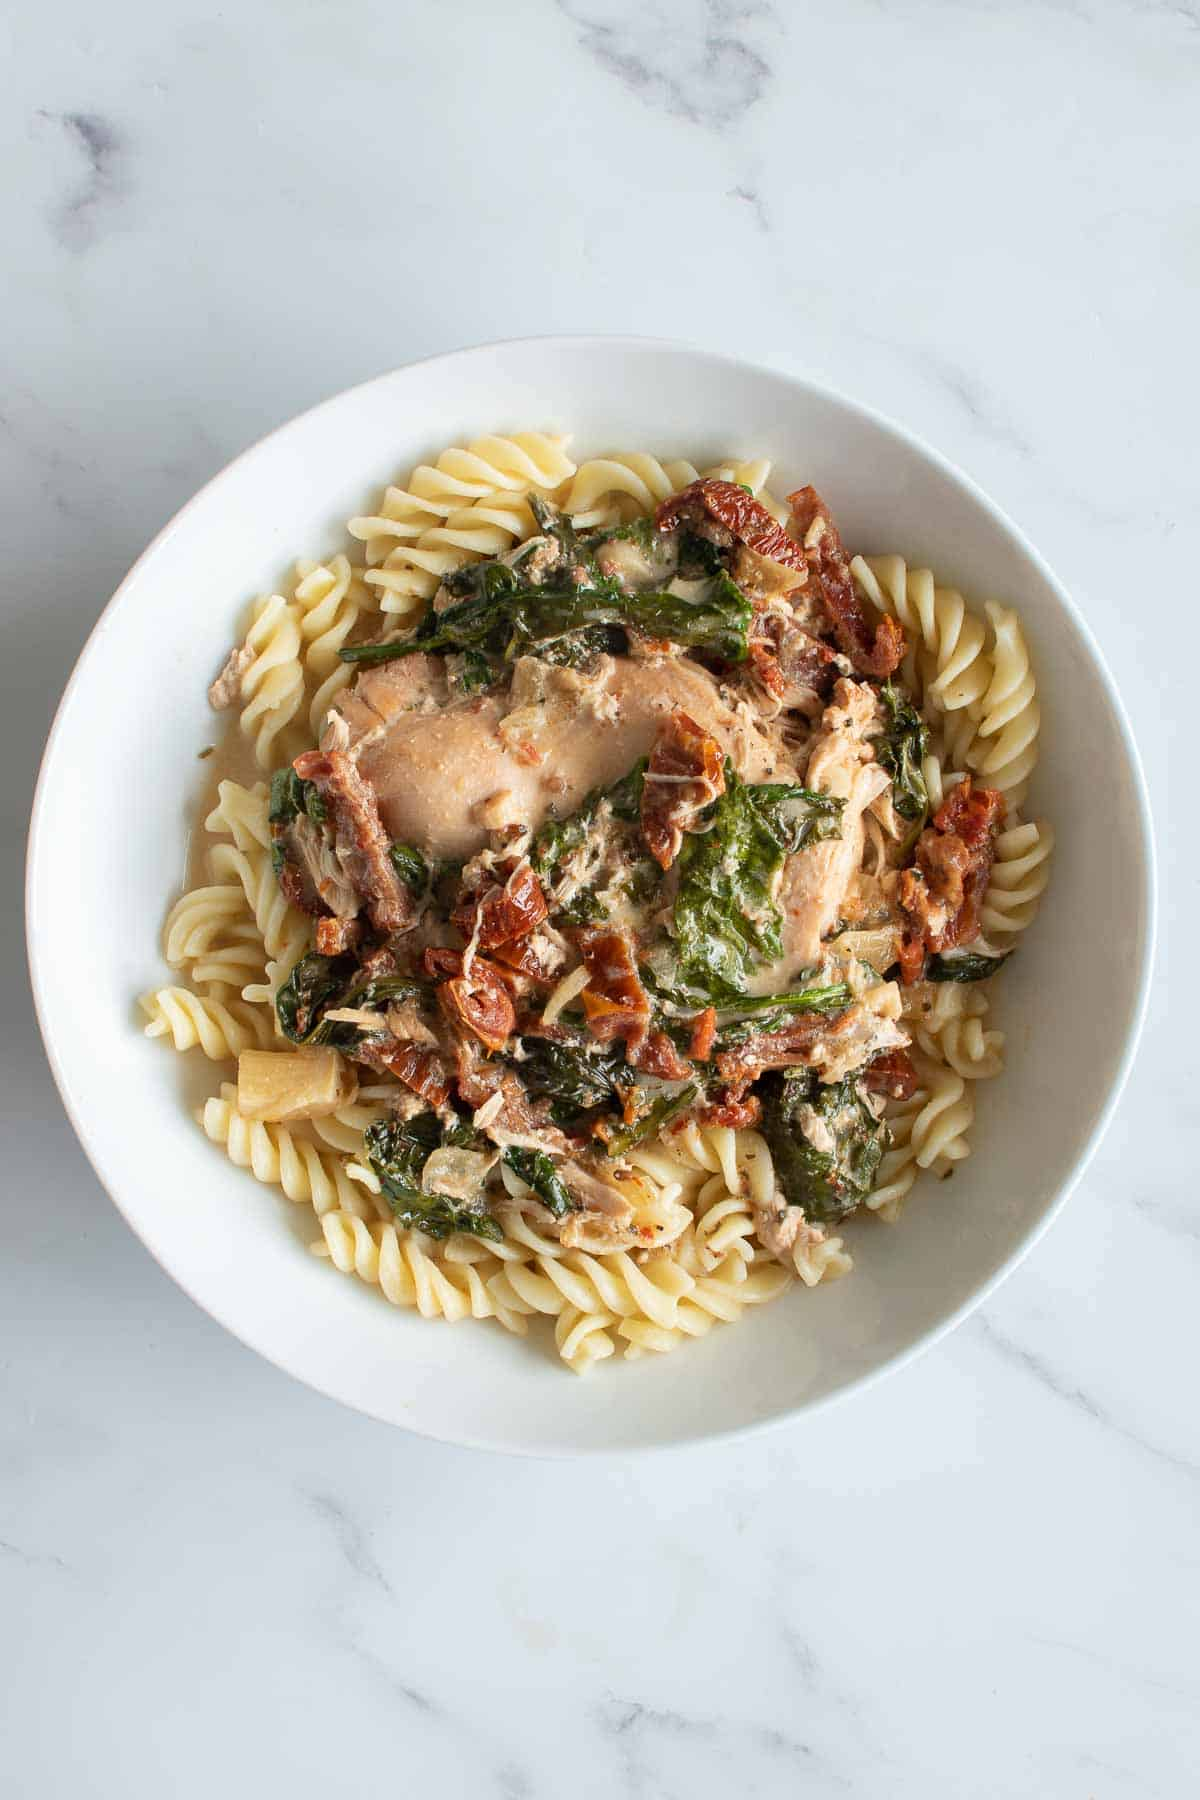 Slow cooked chicken with cream, spinach and sun dried tomatoes over pasta.